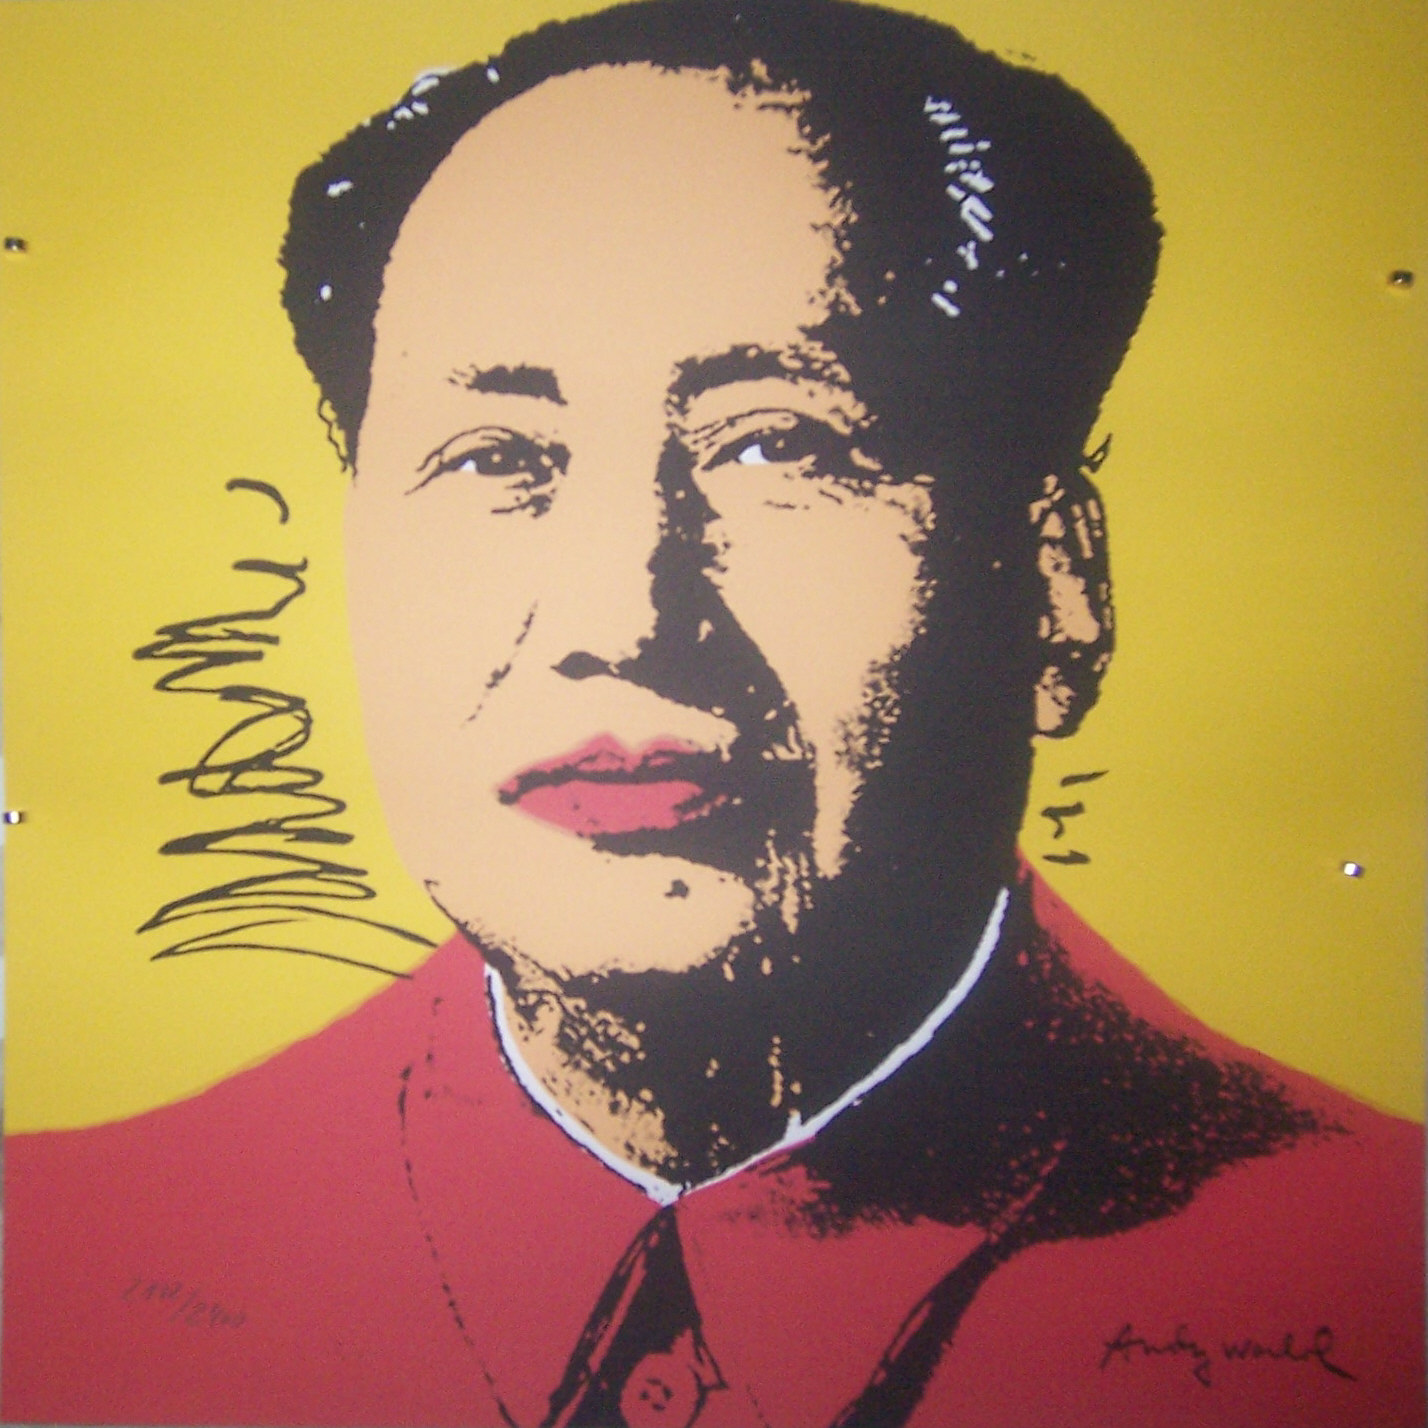 Did Mao Zedong Really Kill Millions in the Great Leap Forward?